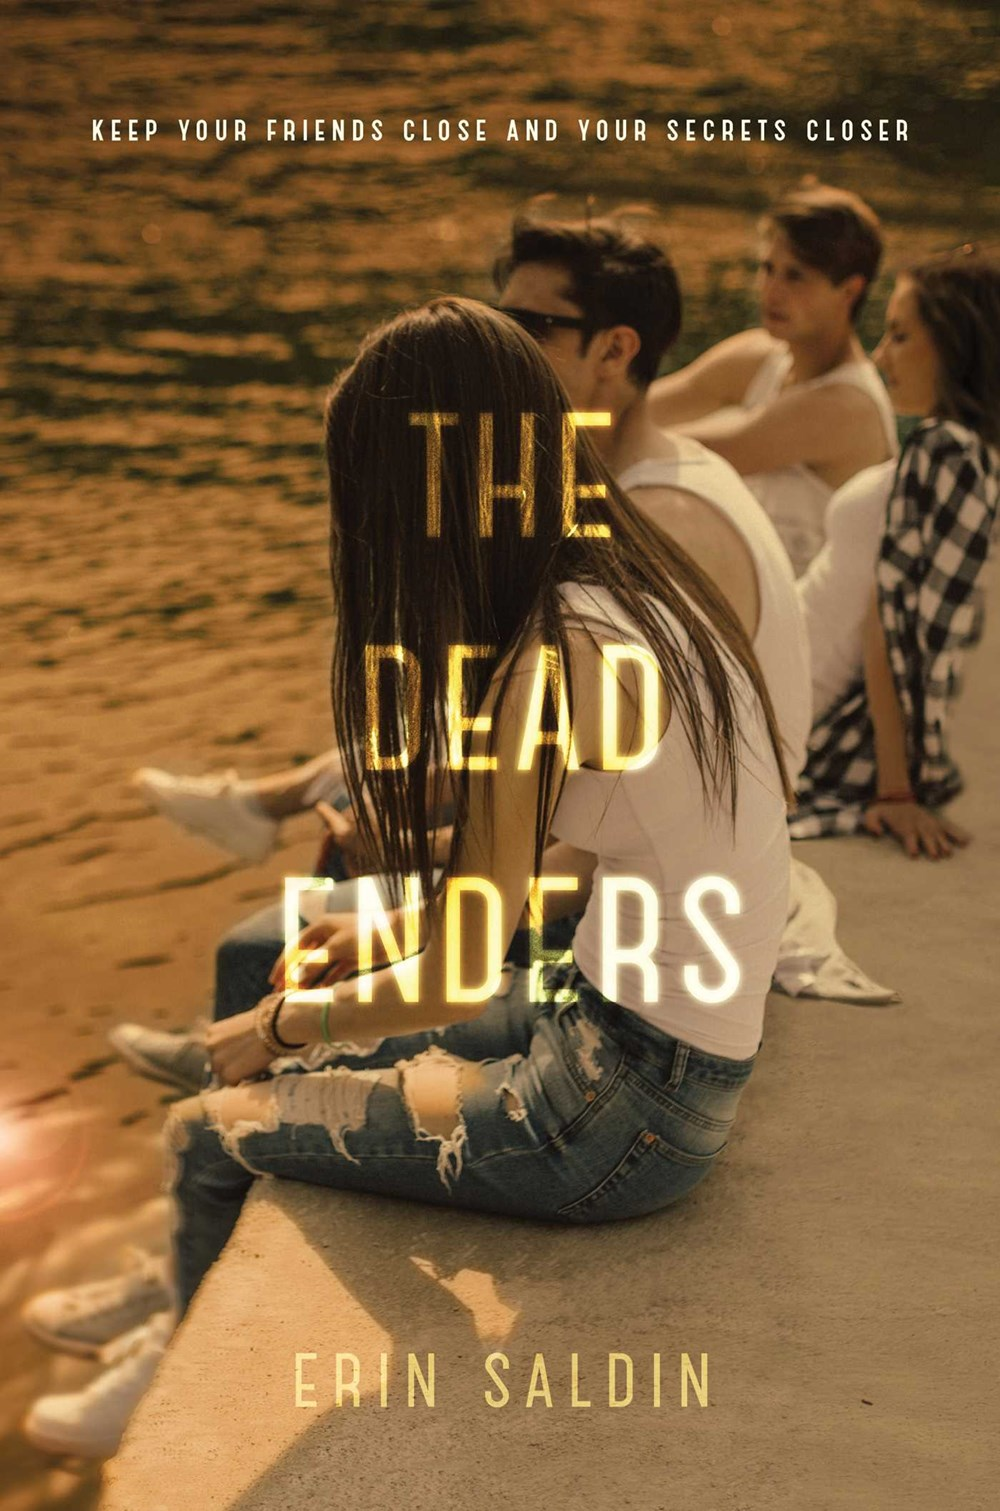 The Dead Enders by Erin Saldin Young adult, Kirkus